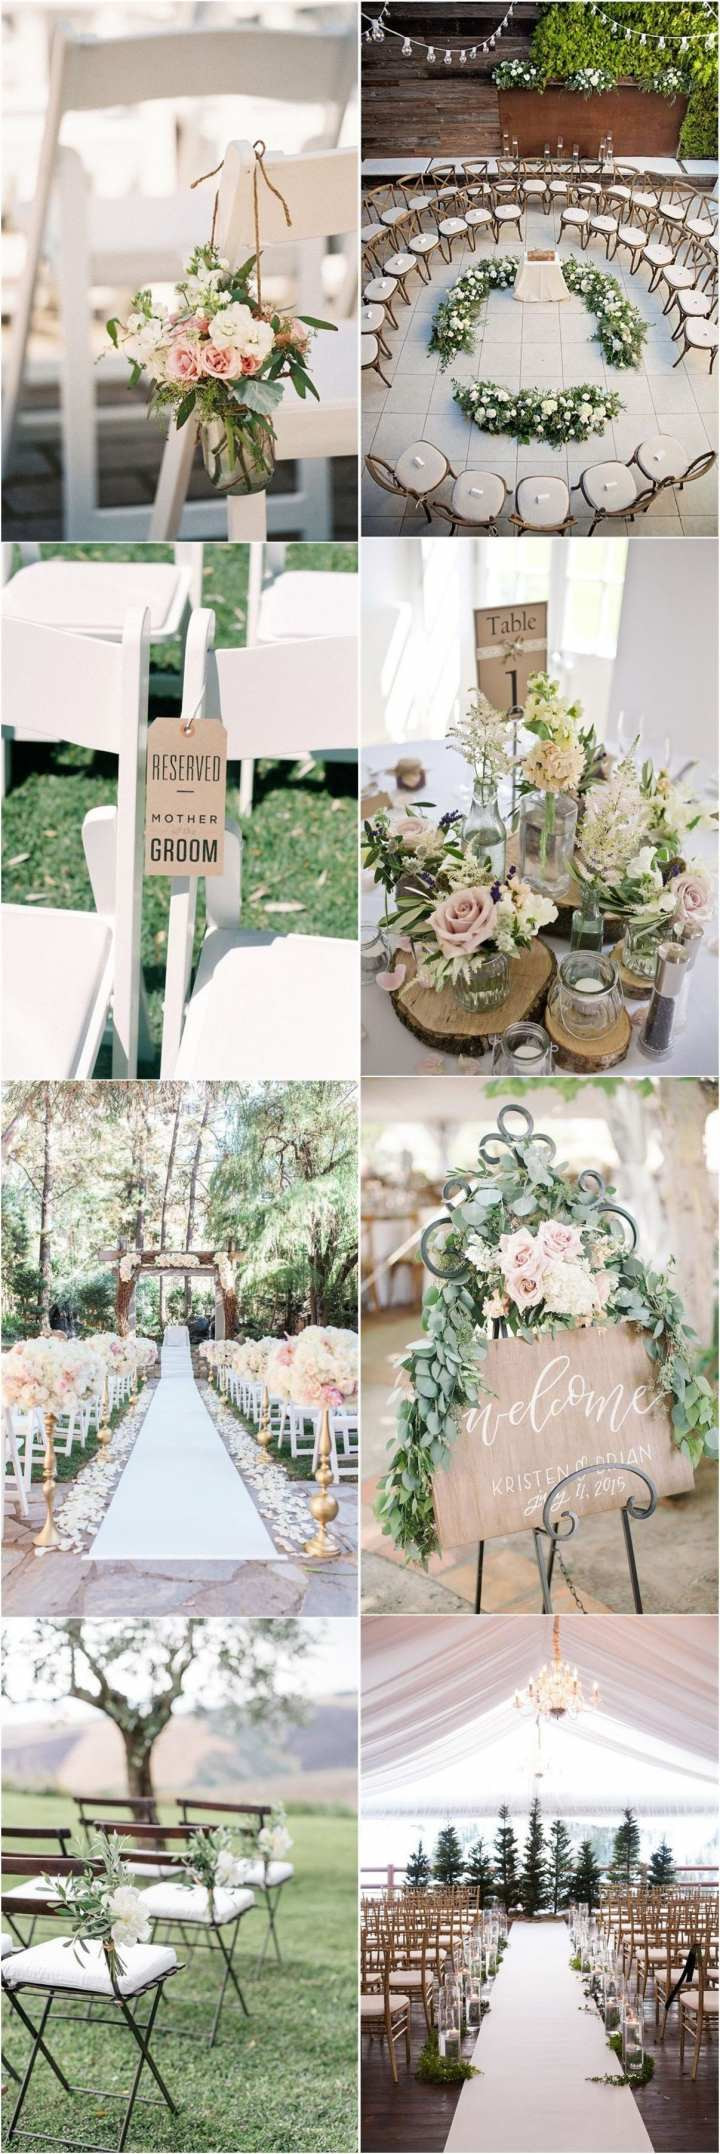 plastic floral vases wholesale of outdoor wedding ceremony lovely vases disposable plastic single with outdoor wedding ceremony best of 35 luxury outdoor wedding decorating ideas of outdoor wedding ceremony lovely